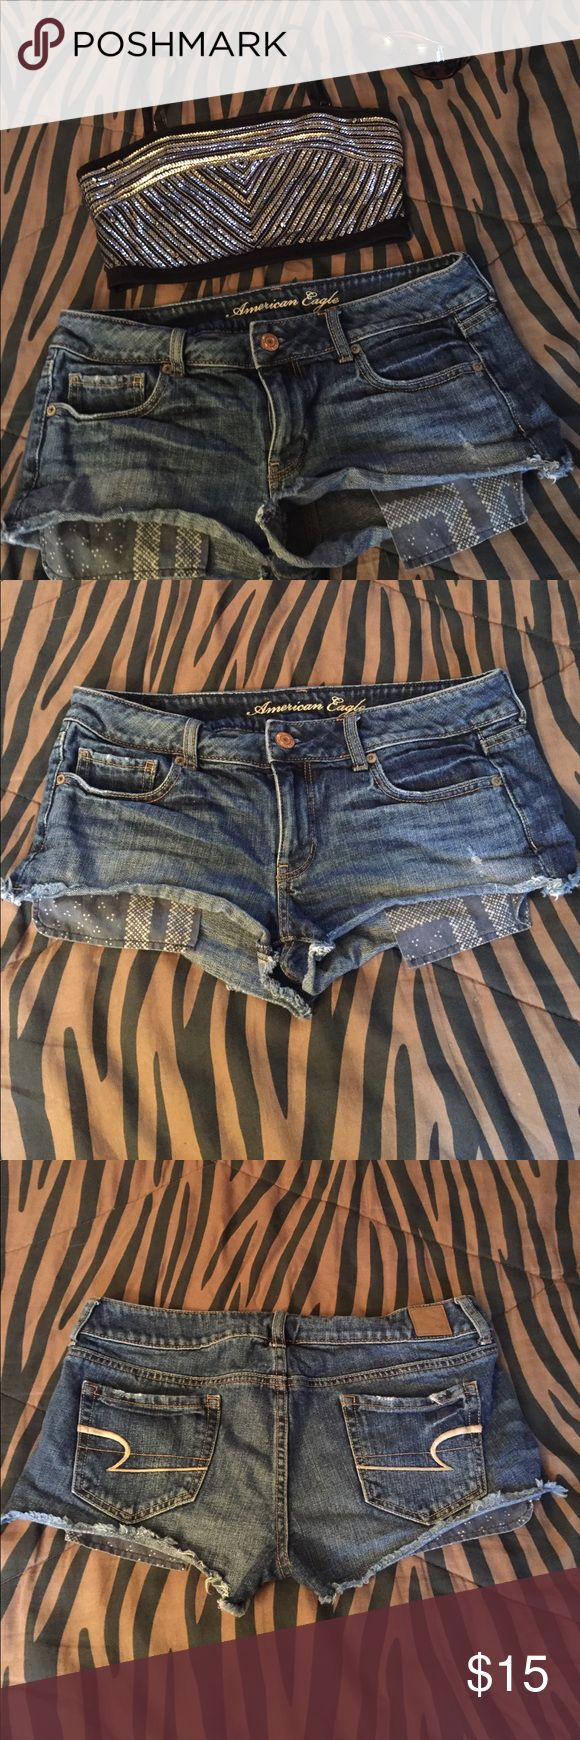 American Eagle Shorts Factory distressed and cut. They Need to be ironed out. They are too short for me but they are very cute Shorts. Dark denim. Measurements in pics. Willing to take reasonable offers!! And I do offer bundle discounts! Thanks for looking and Happy Poshing! American Eagle Outfitters Shorts Jean Shorts